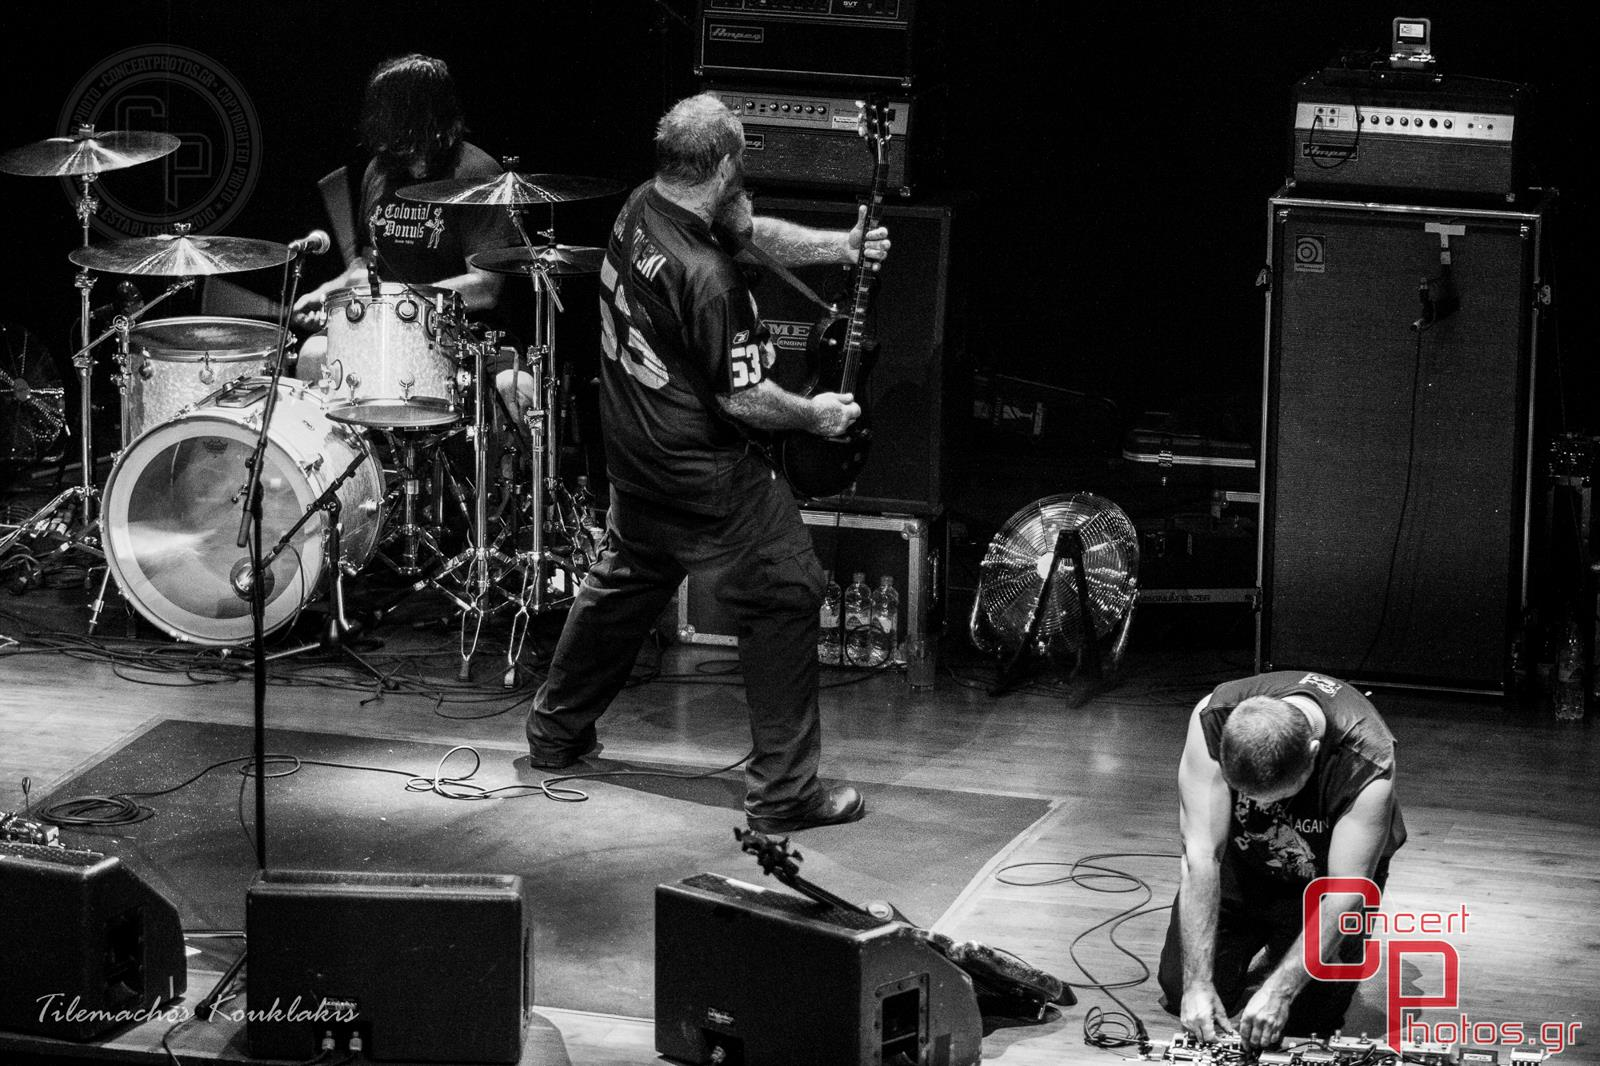 Neurosis-Neurosis photographer:  - concertphotos_20140707_23_56_37-2